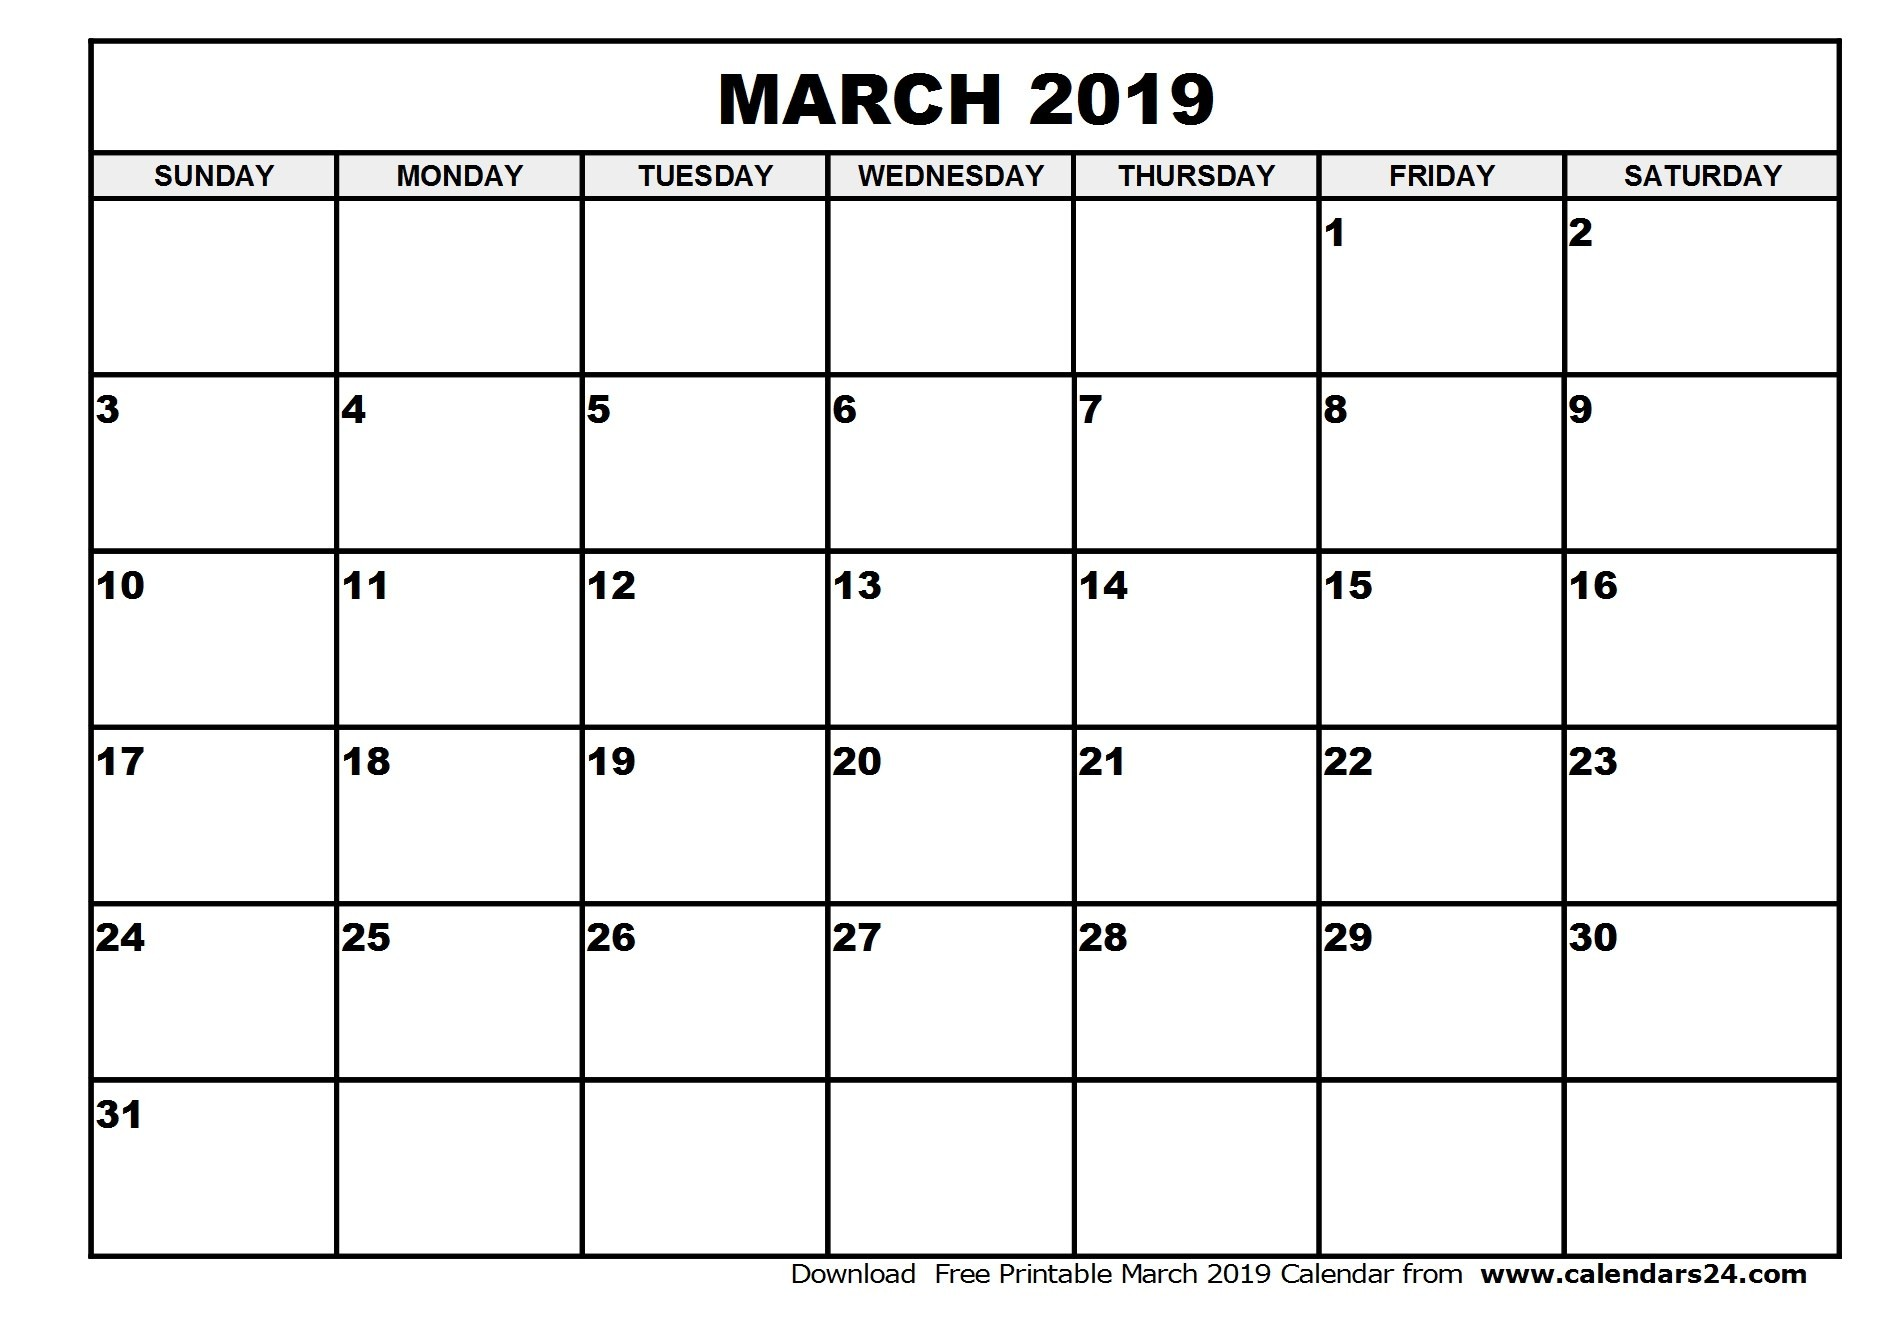 March 2019 Calendar Template Calendar Year Printable